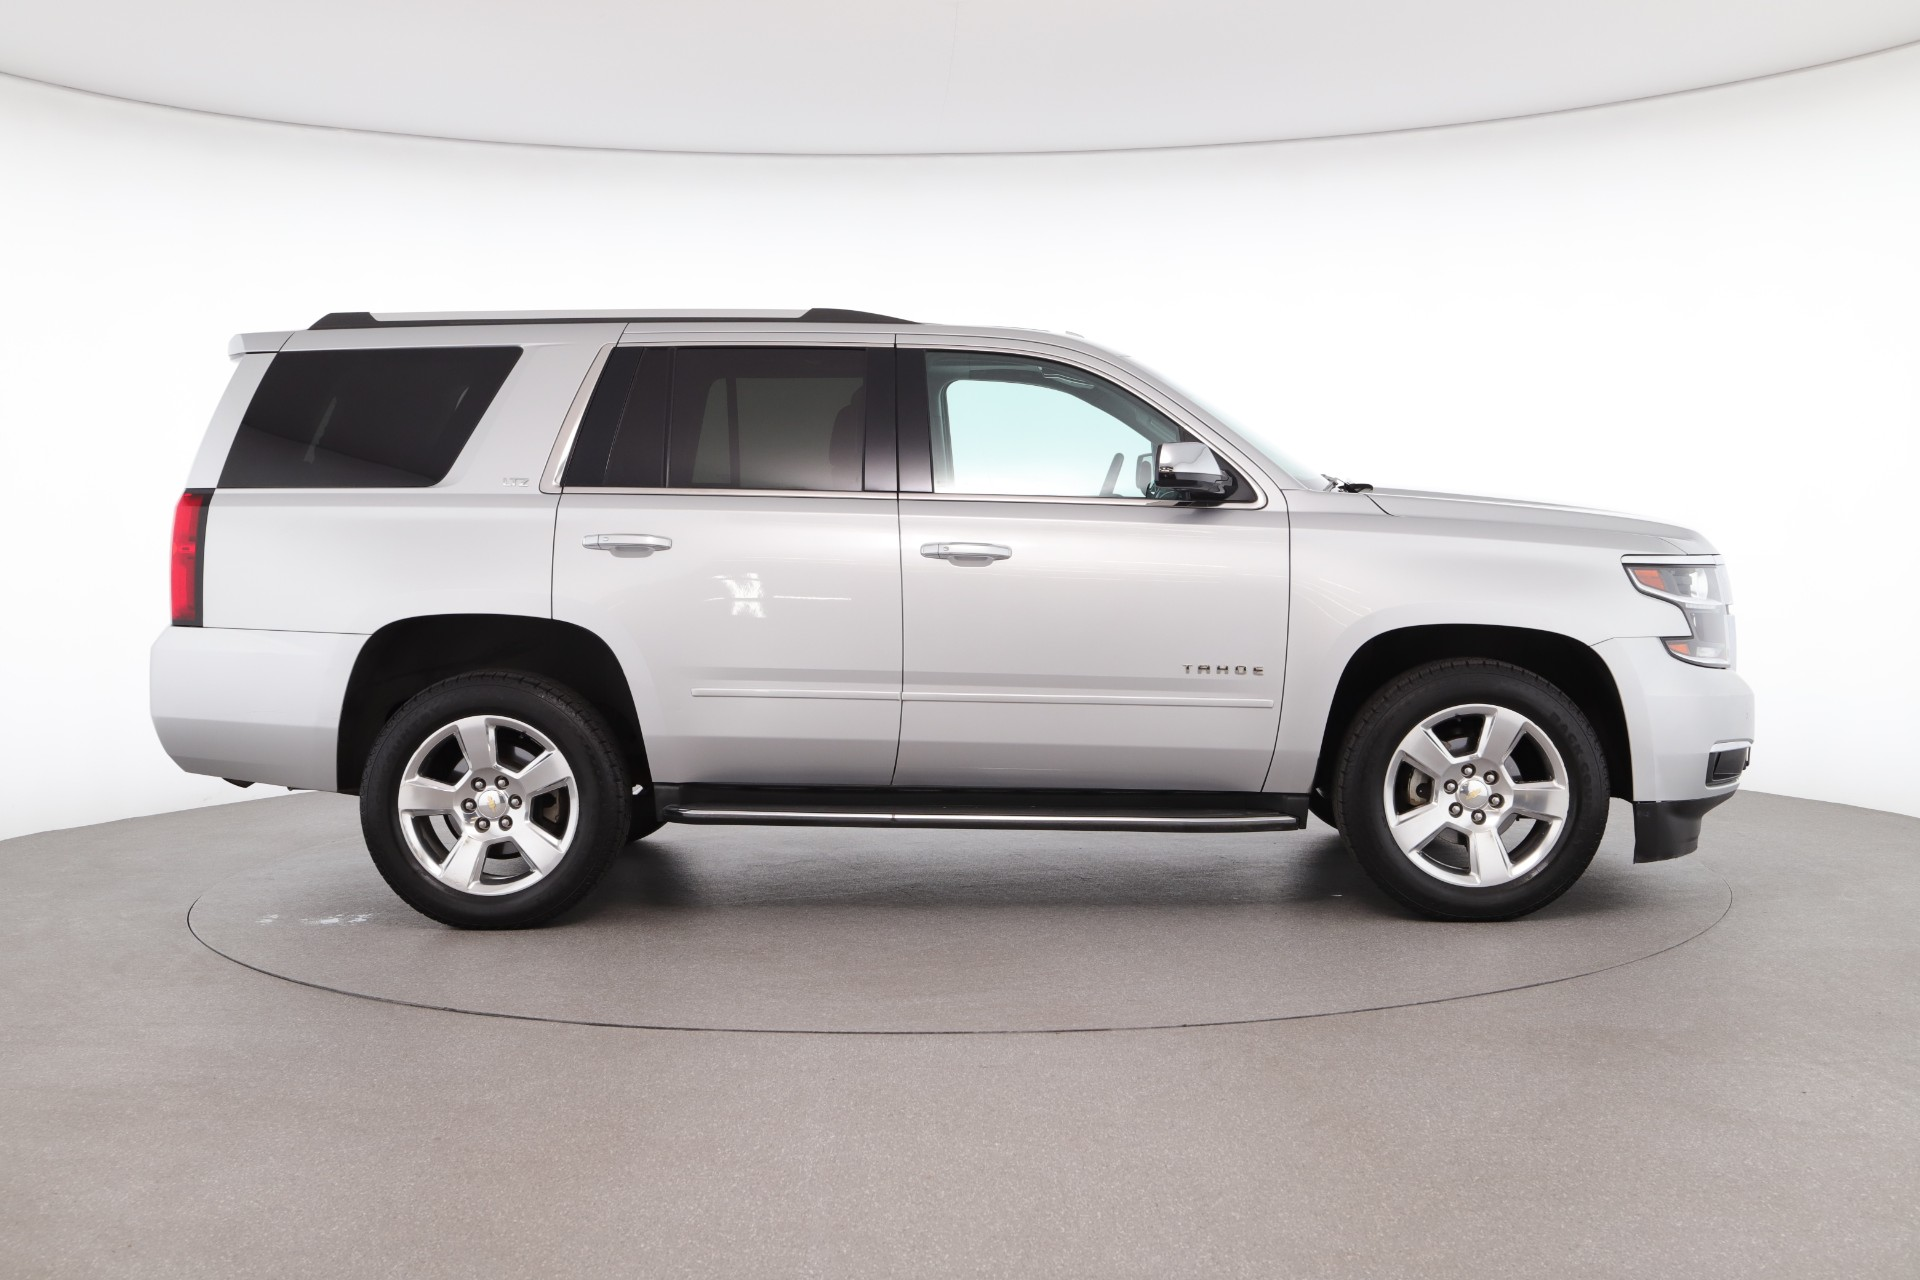 Chevrolet Tahoe vs. GMC Yukon: Which SUV Is Best For You